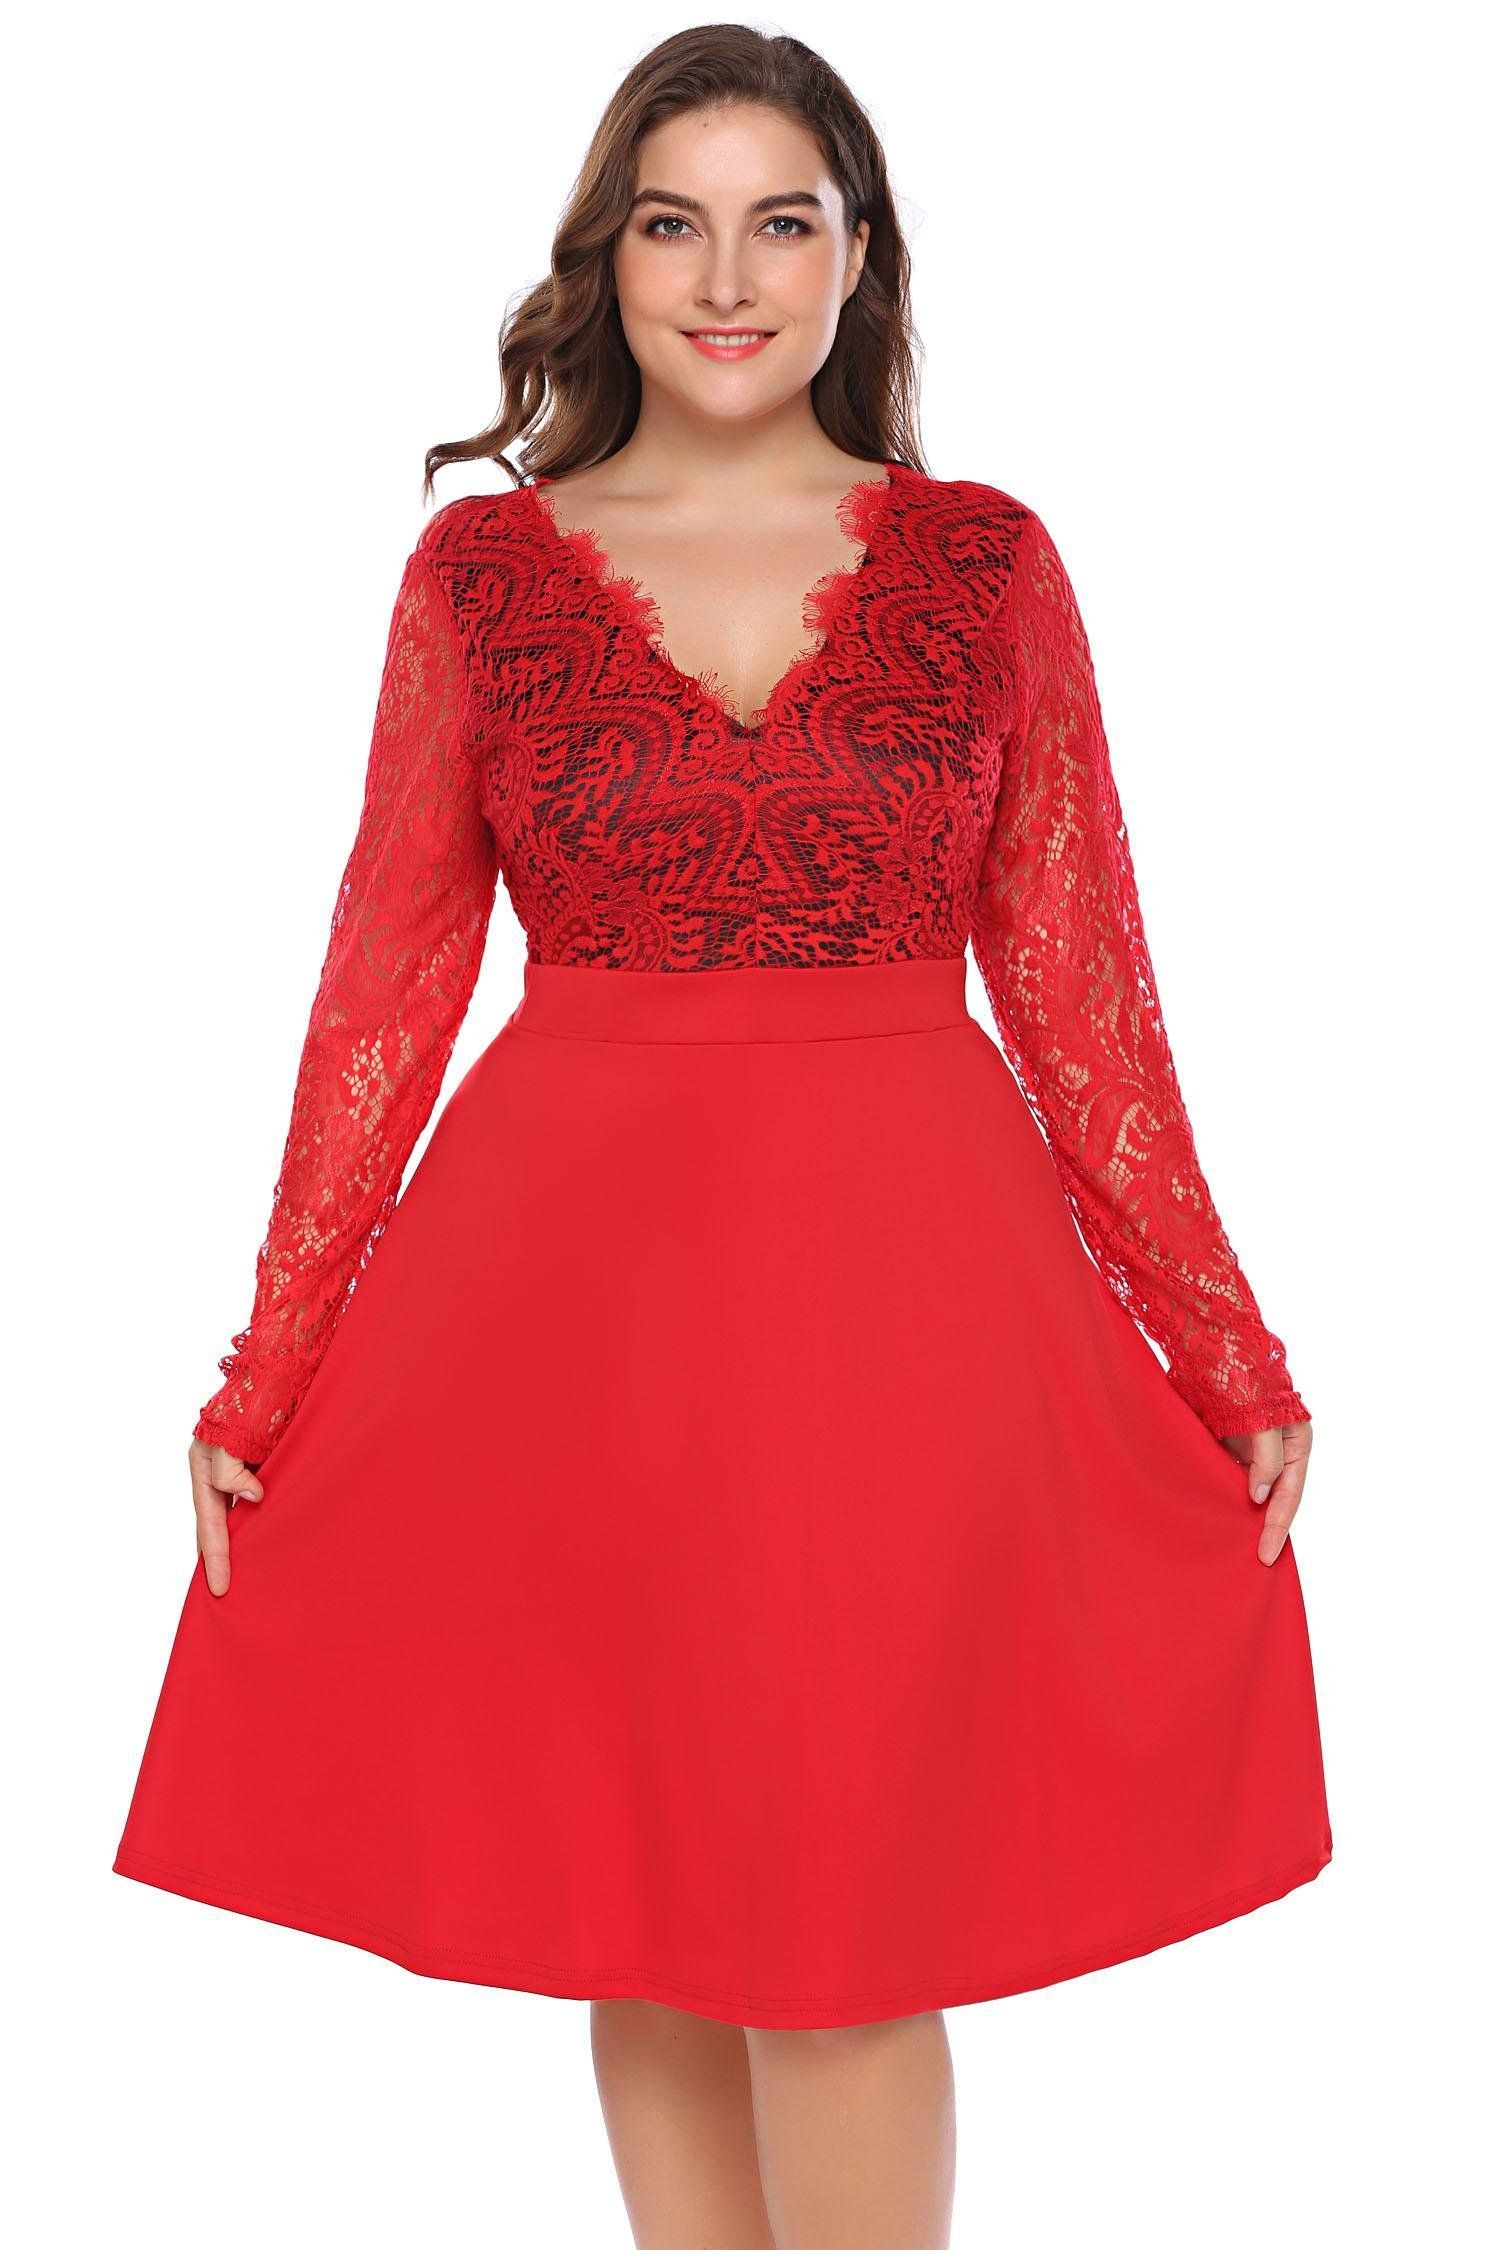 Involand women plus size sexy deep v neck hollow floral lace long